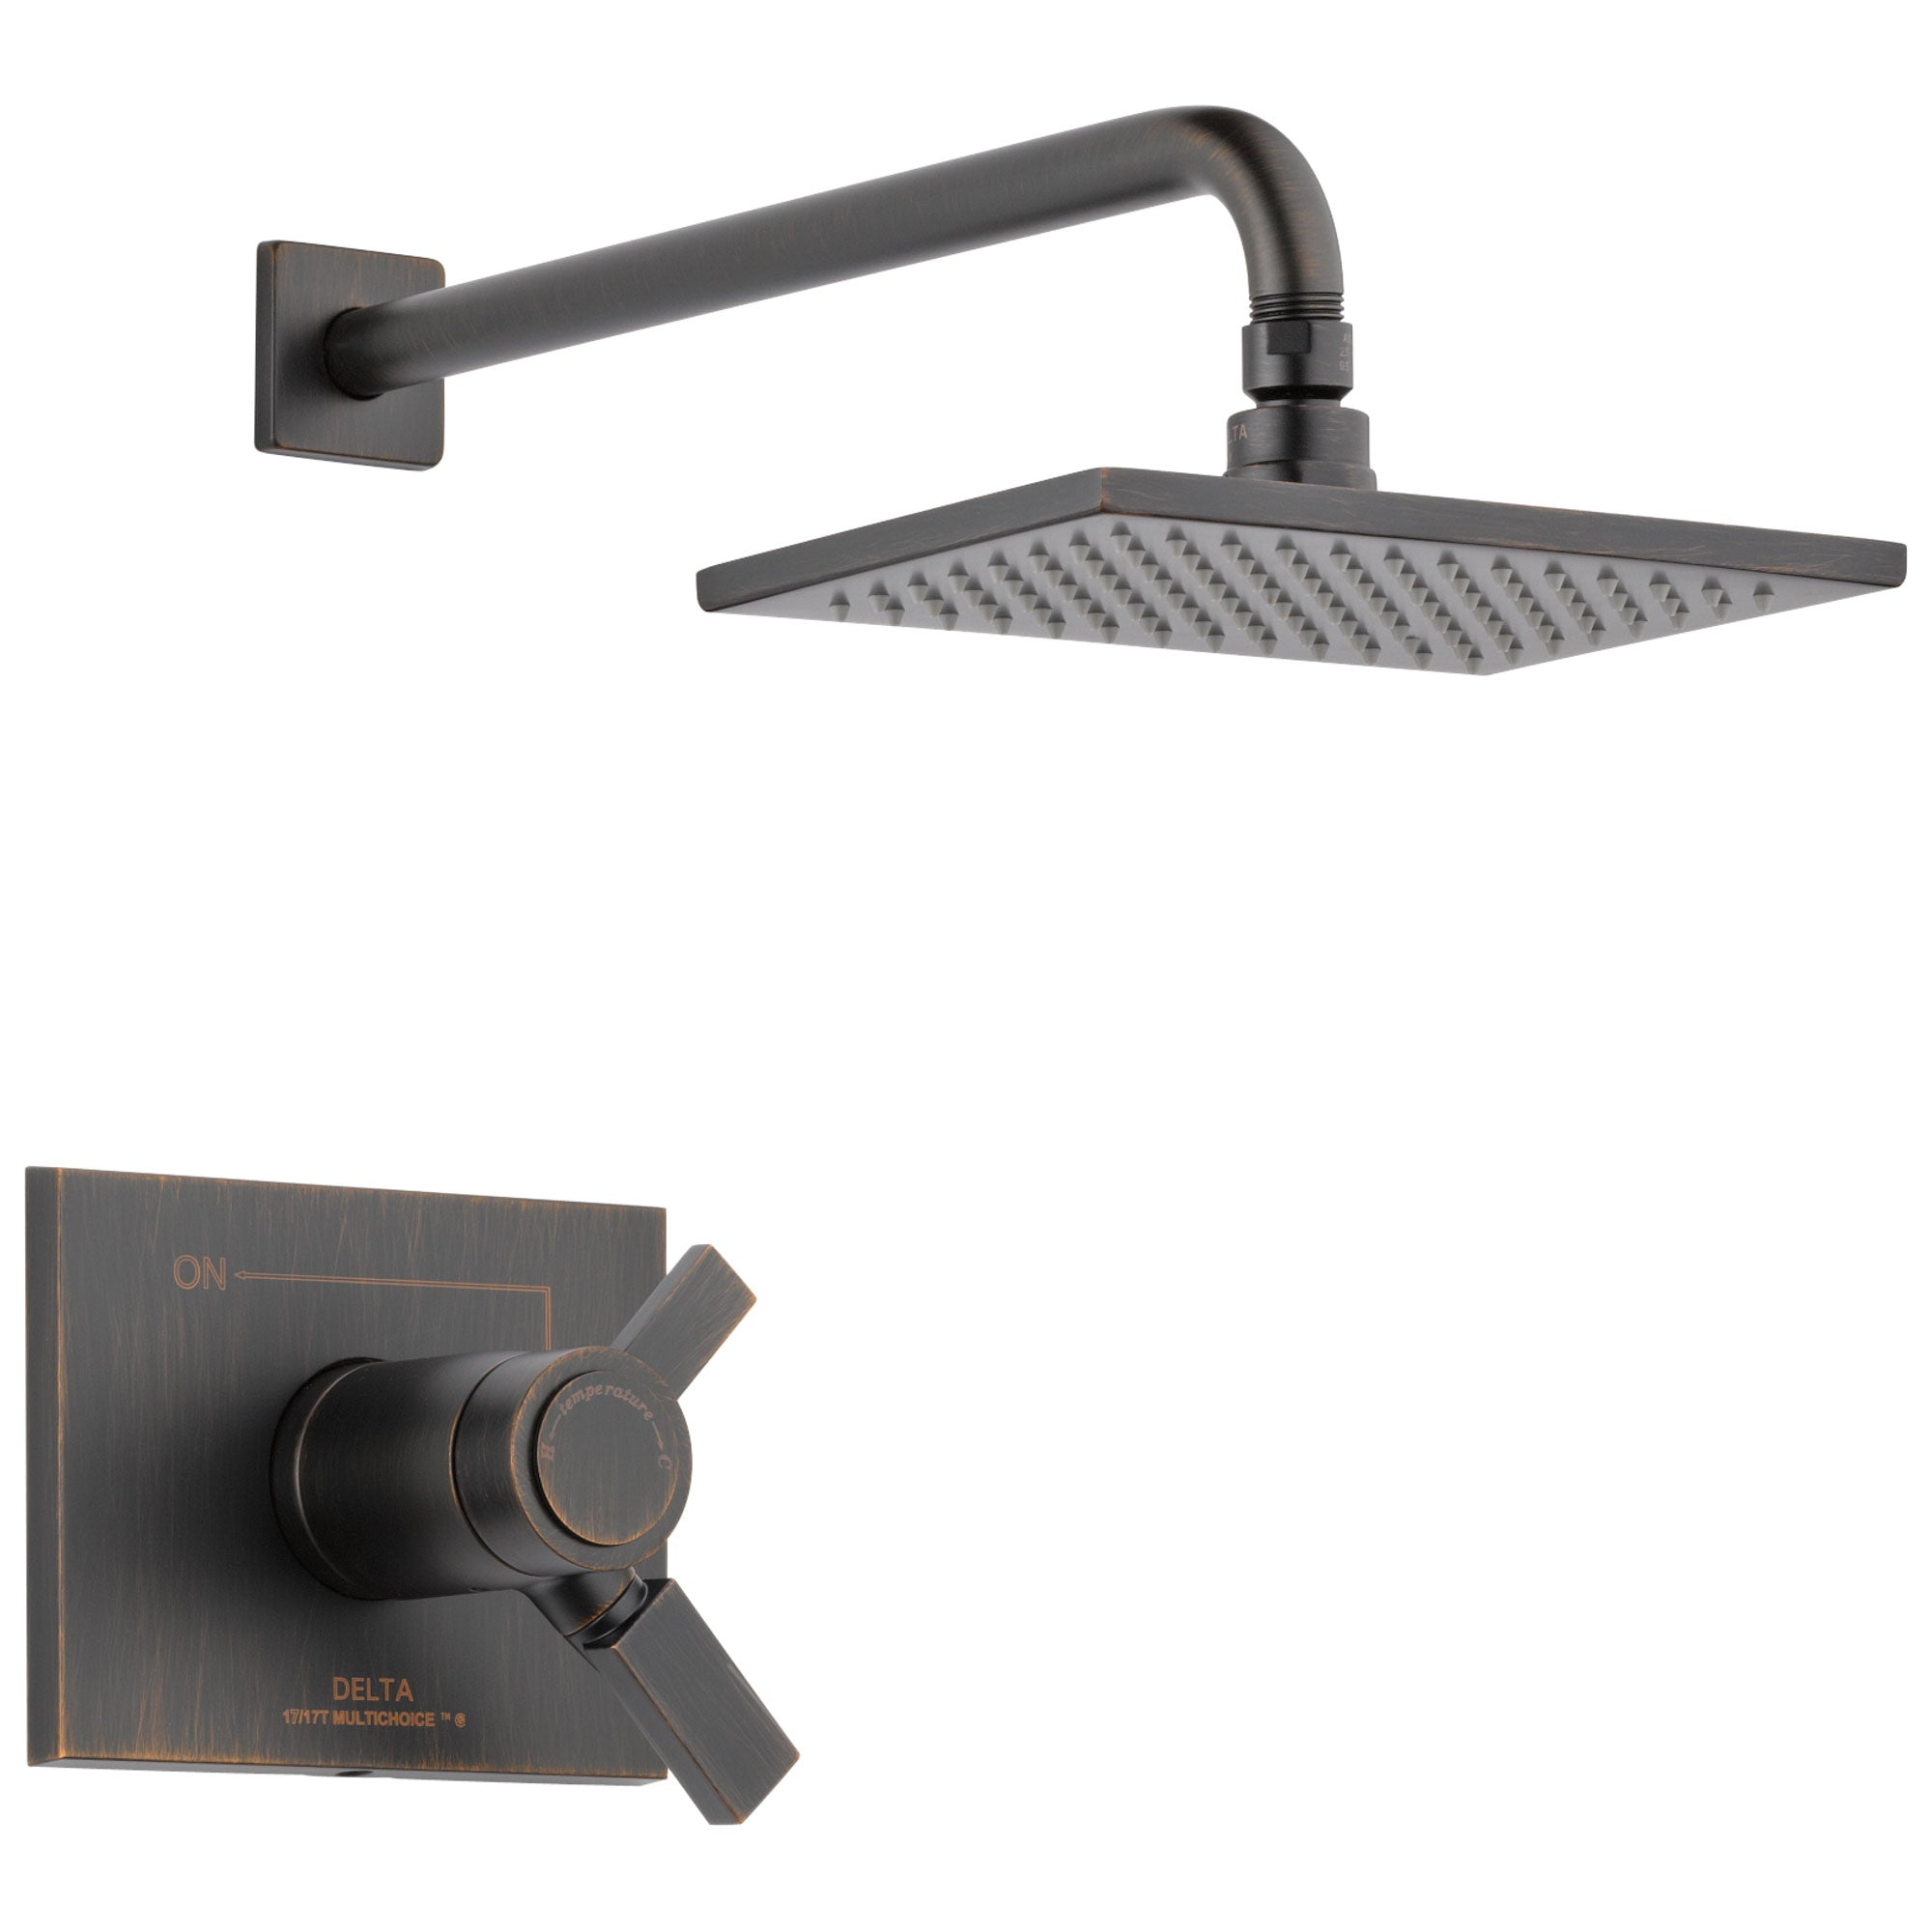 Delta Vero Collection Venetian Bronze 1.75 GPM Water Efficient Modern Thermostatic Dual Control Shower only Faucet Trim (Requires Valve) DT17T253RBWE